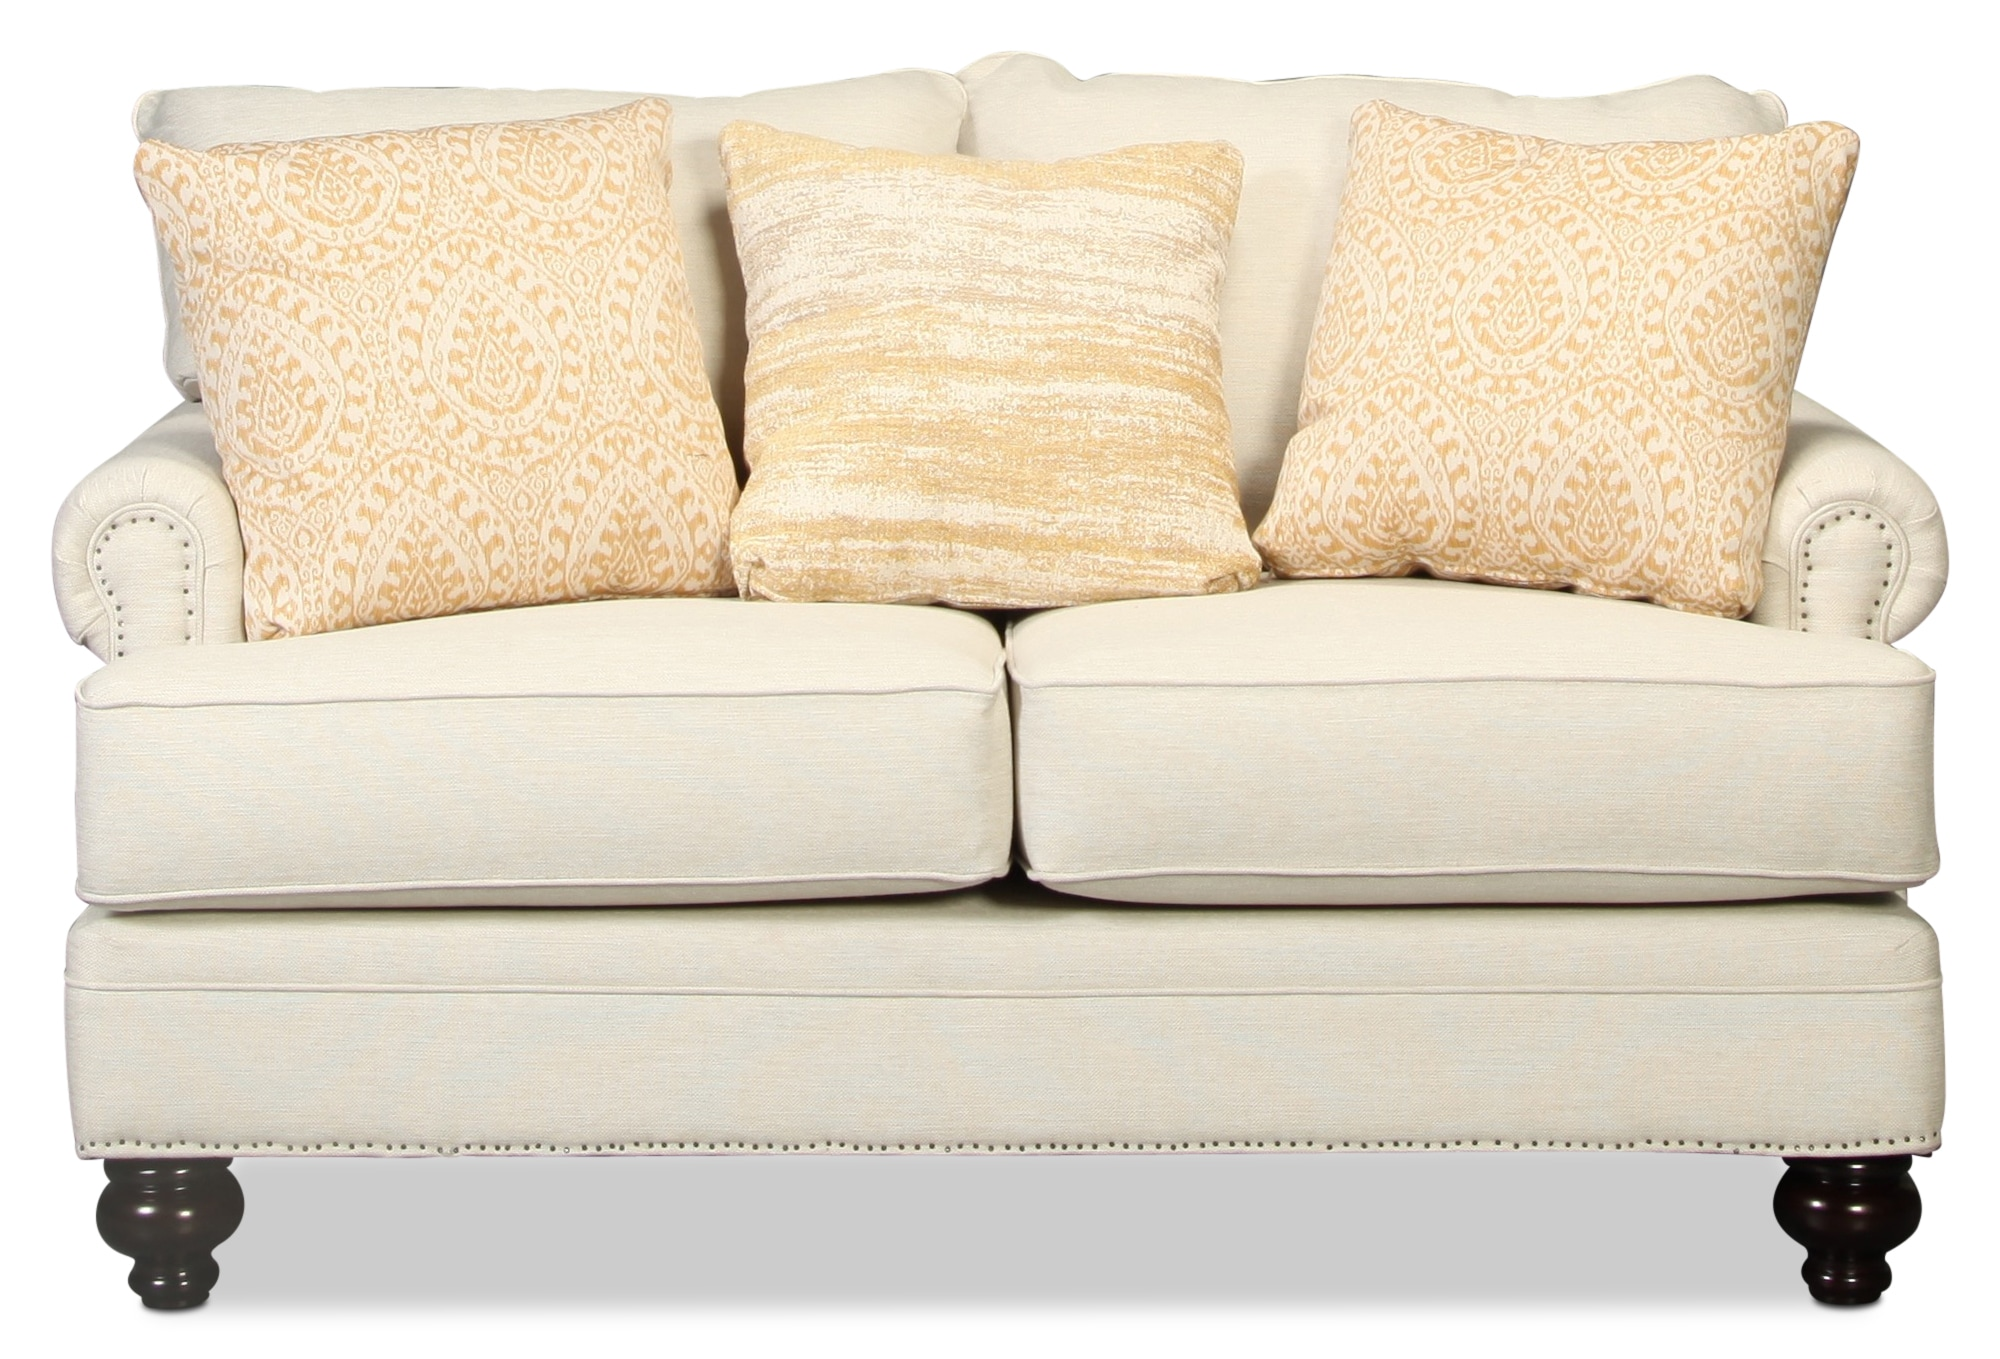 The Montecito Loveseat